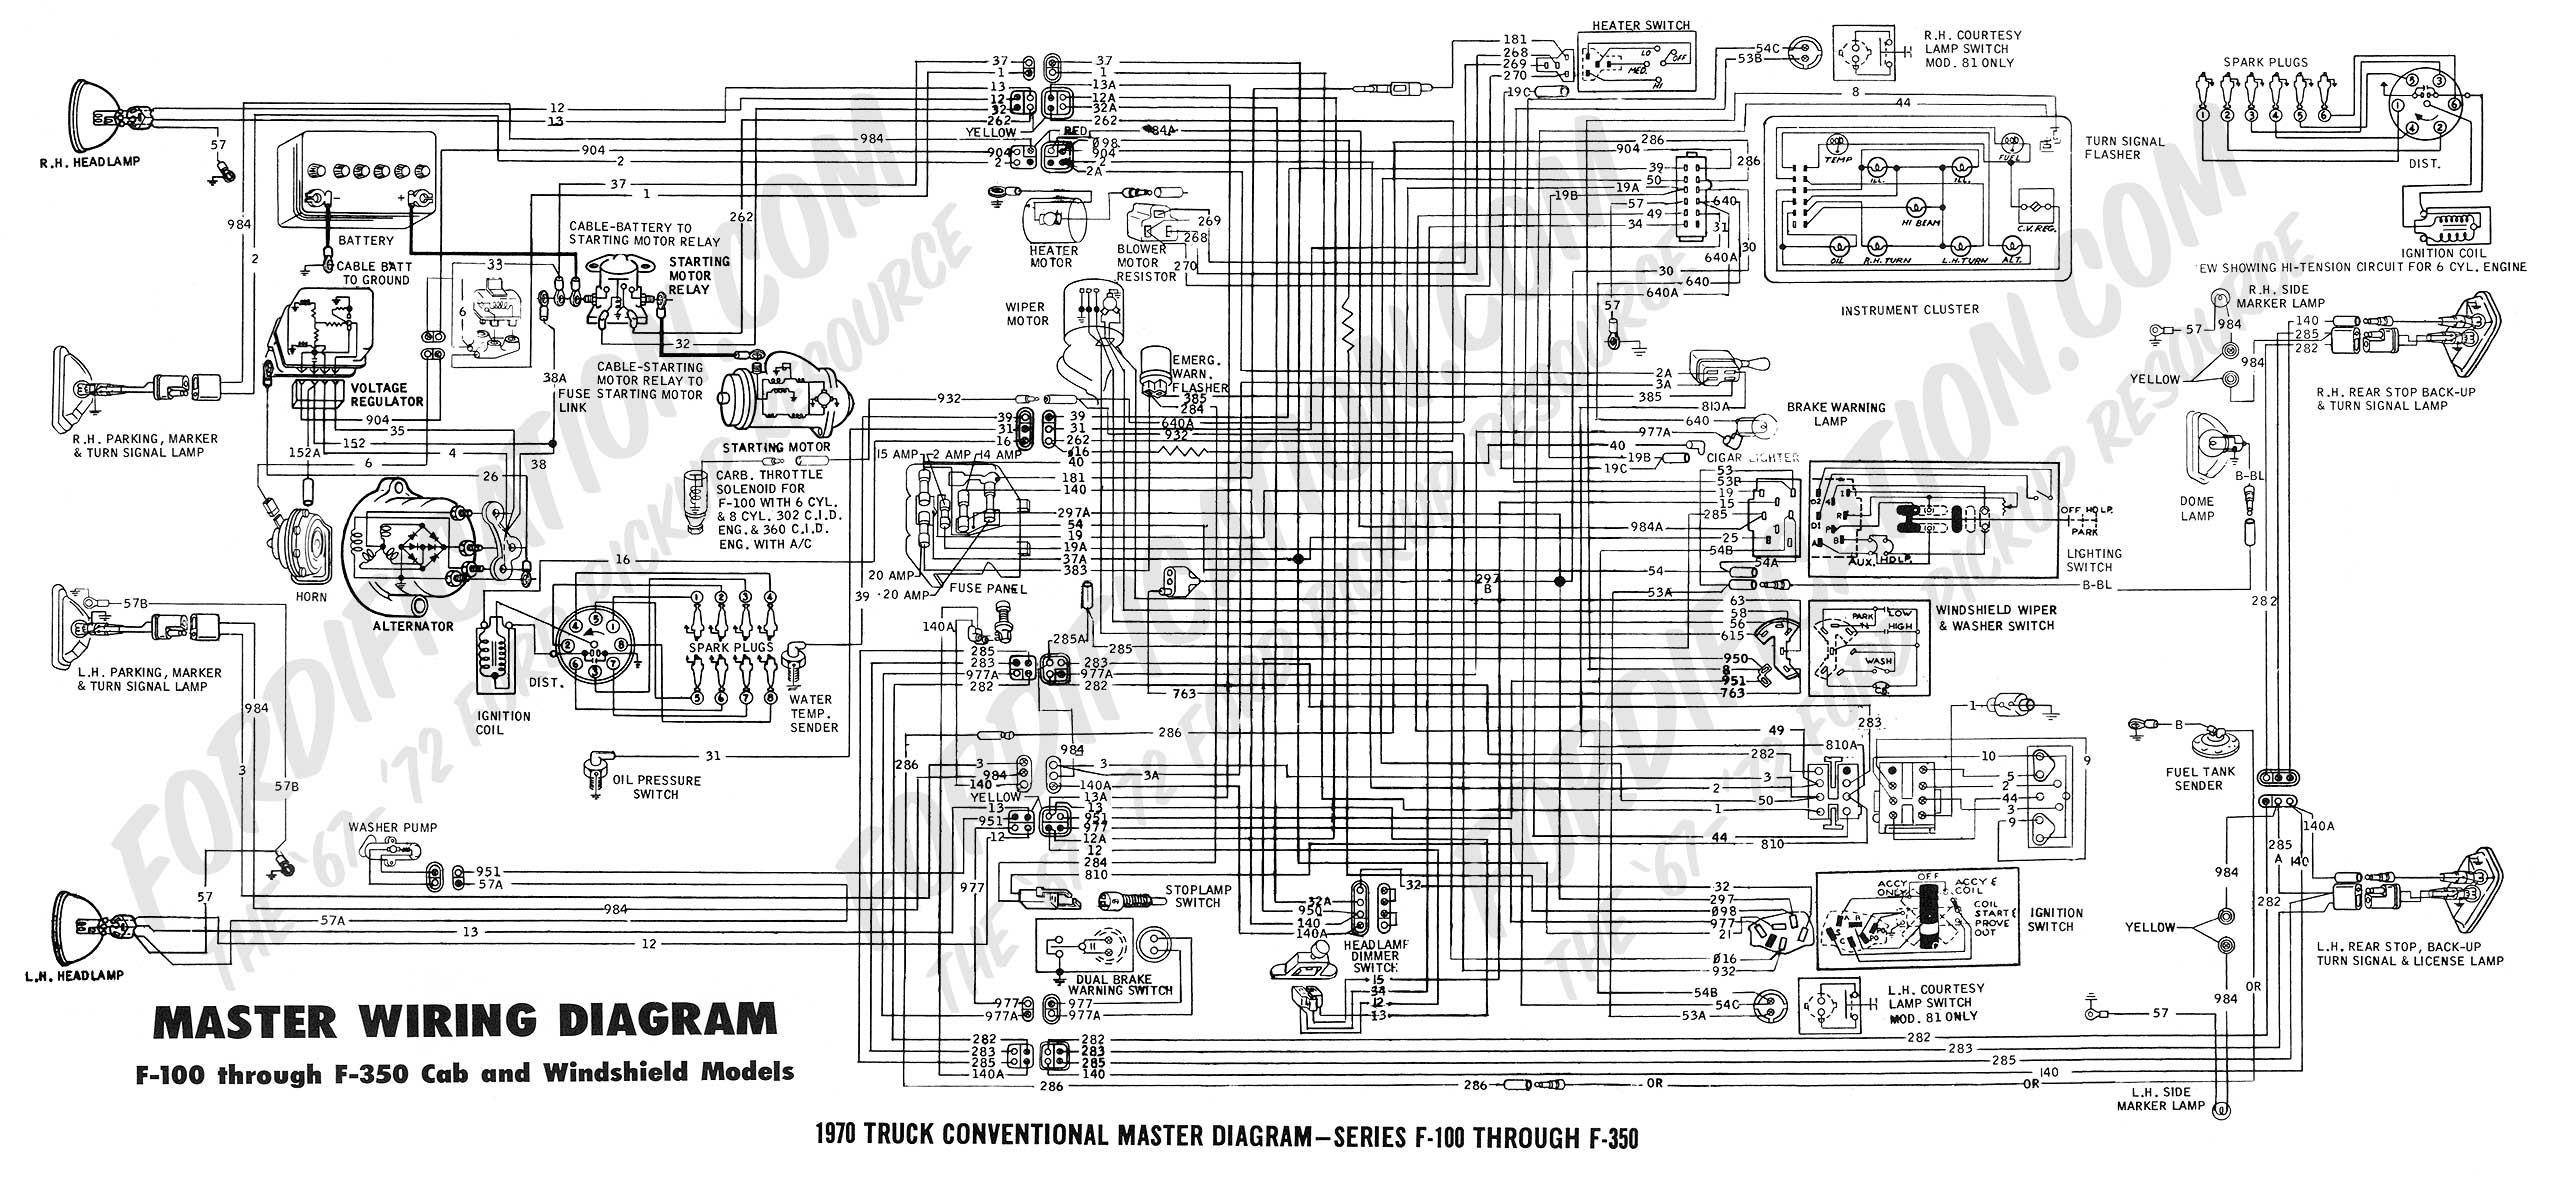 1988 f150 wiring diagram wiring diagram data oreo rh 15 9 drk pink de